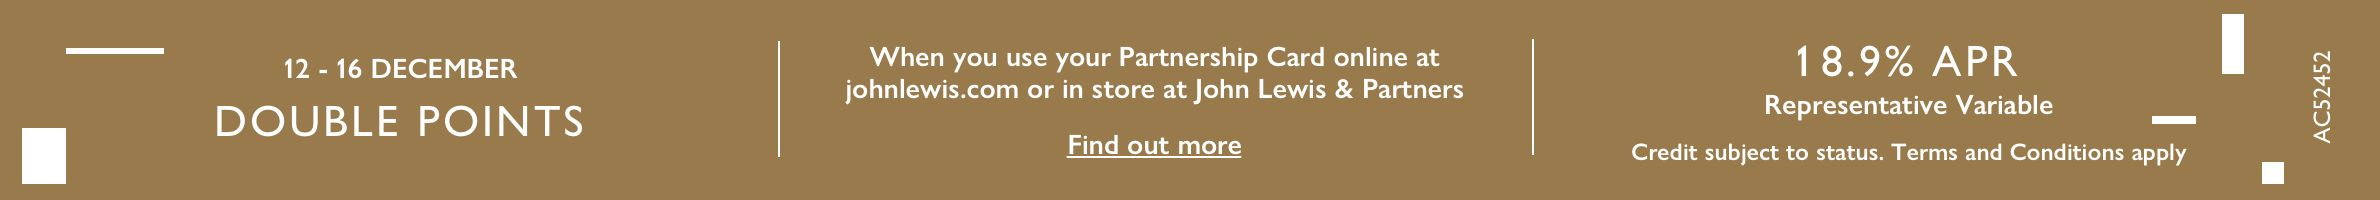 Double points when you use your Patnership Card online at johnlewis.com or in store at John Lewis & Partners